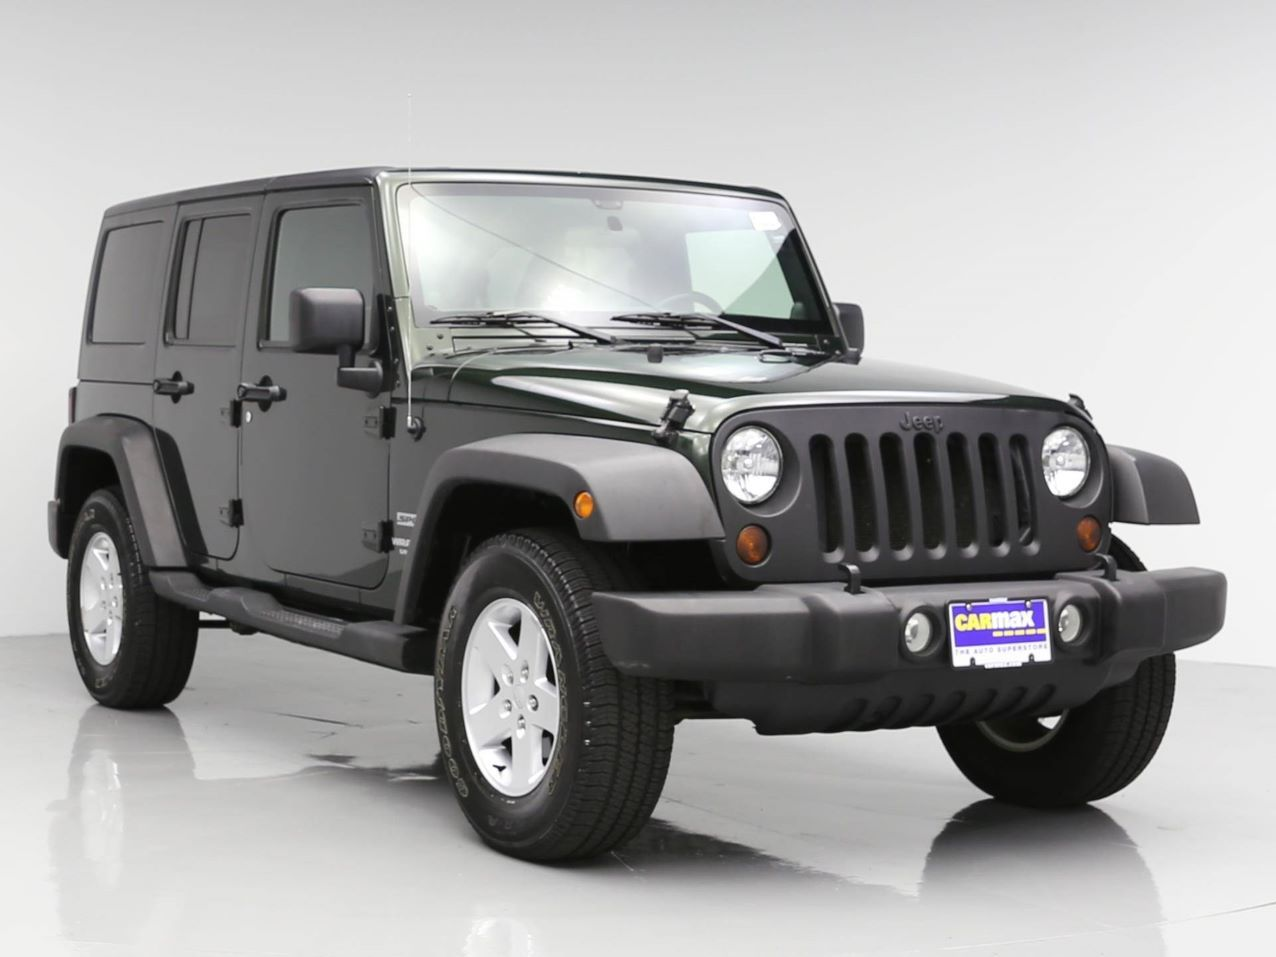 2011 Jeep Wrangler Unlimited Sport 4 DOOR!! 26,998/69K miles